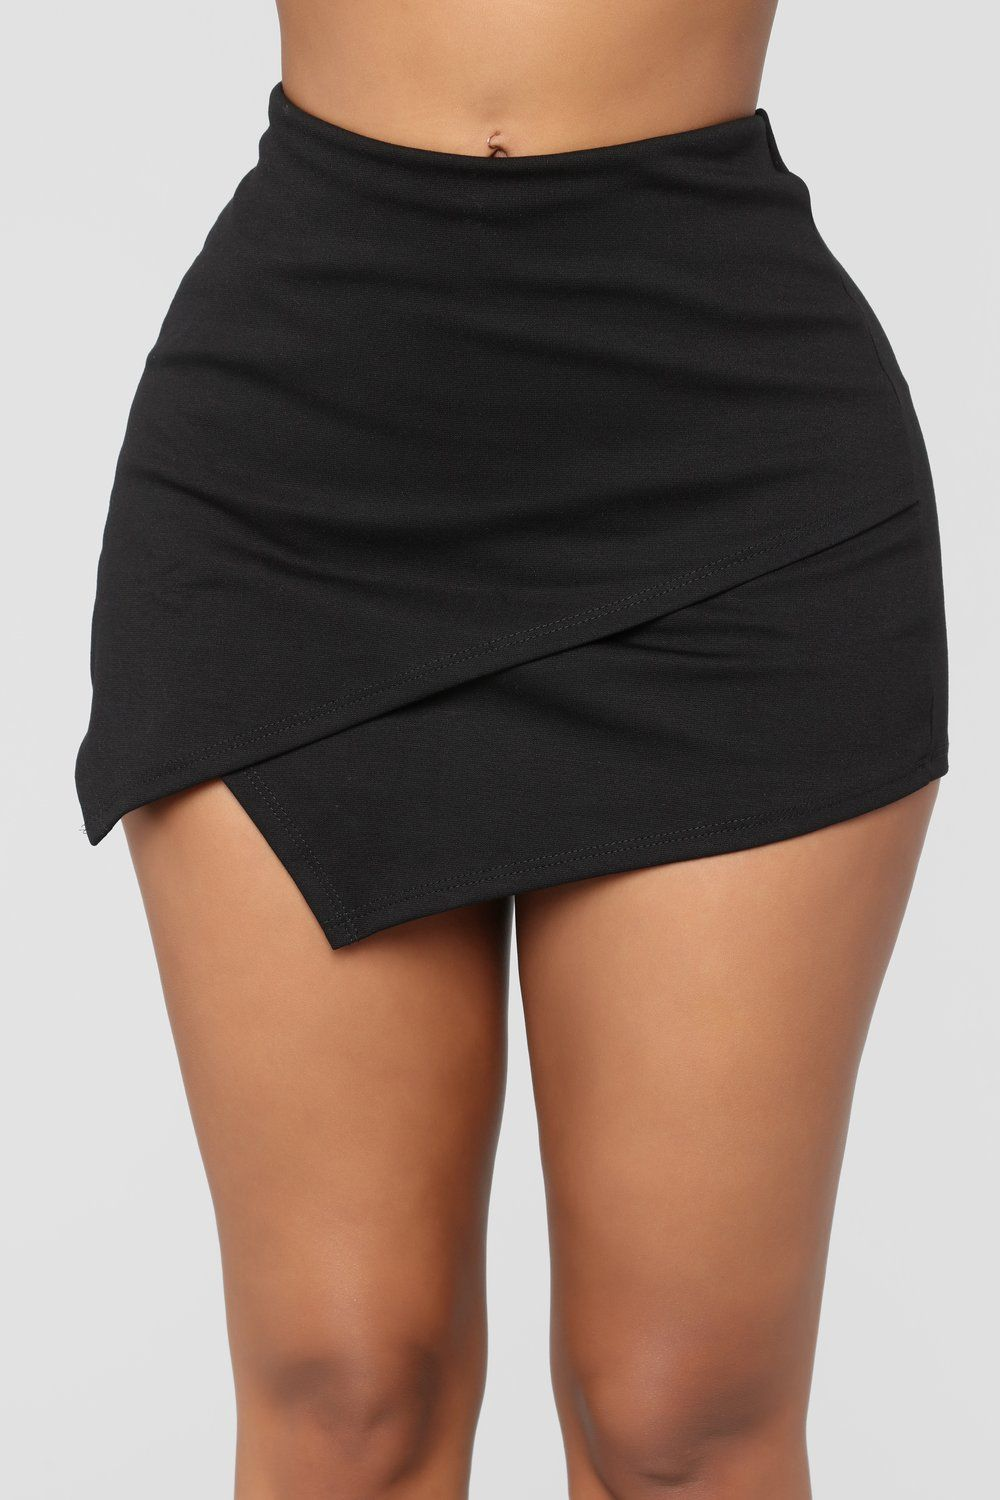 b51fca3e19 What's In The Envelope Skirt - Black in 2019 | style & beauty ...